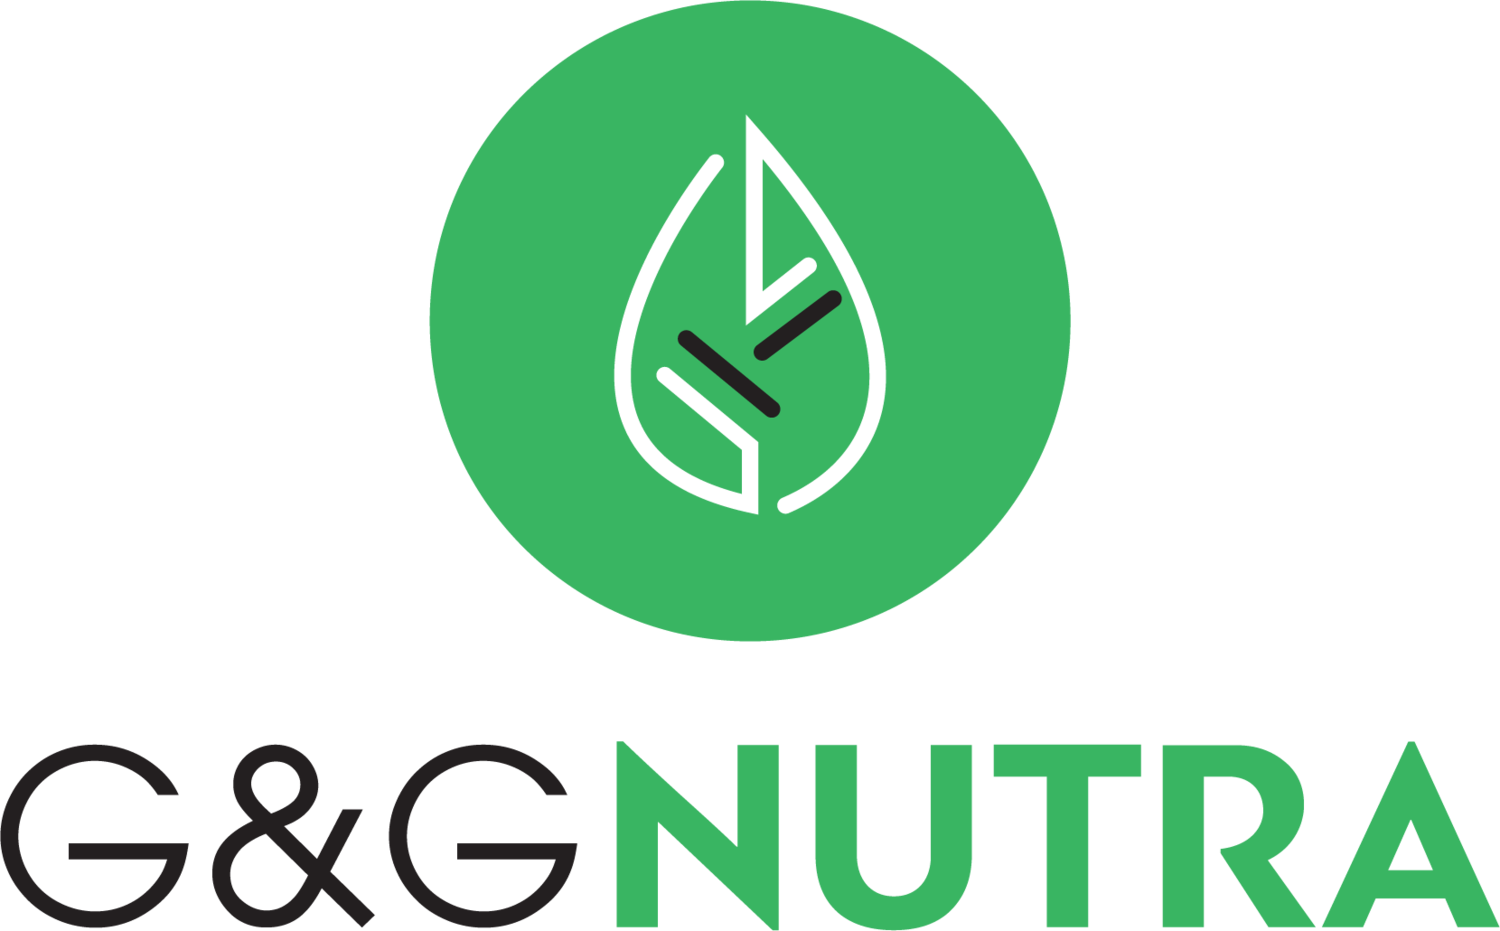 G&G Nutra | Quality Ingredients for nutraceutical, vitamin, dietary supplement, functional food & beverage since 2000